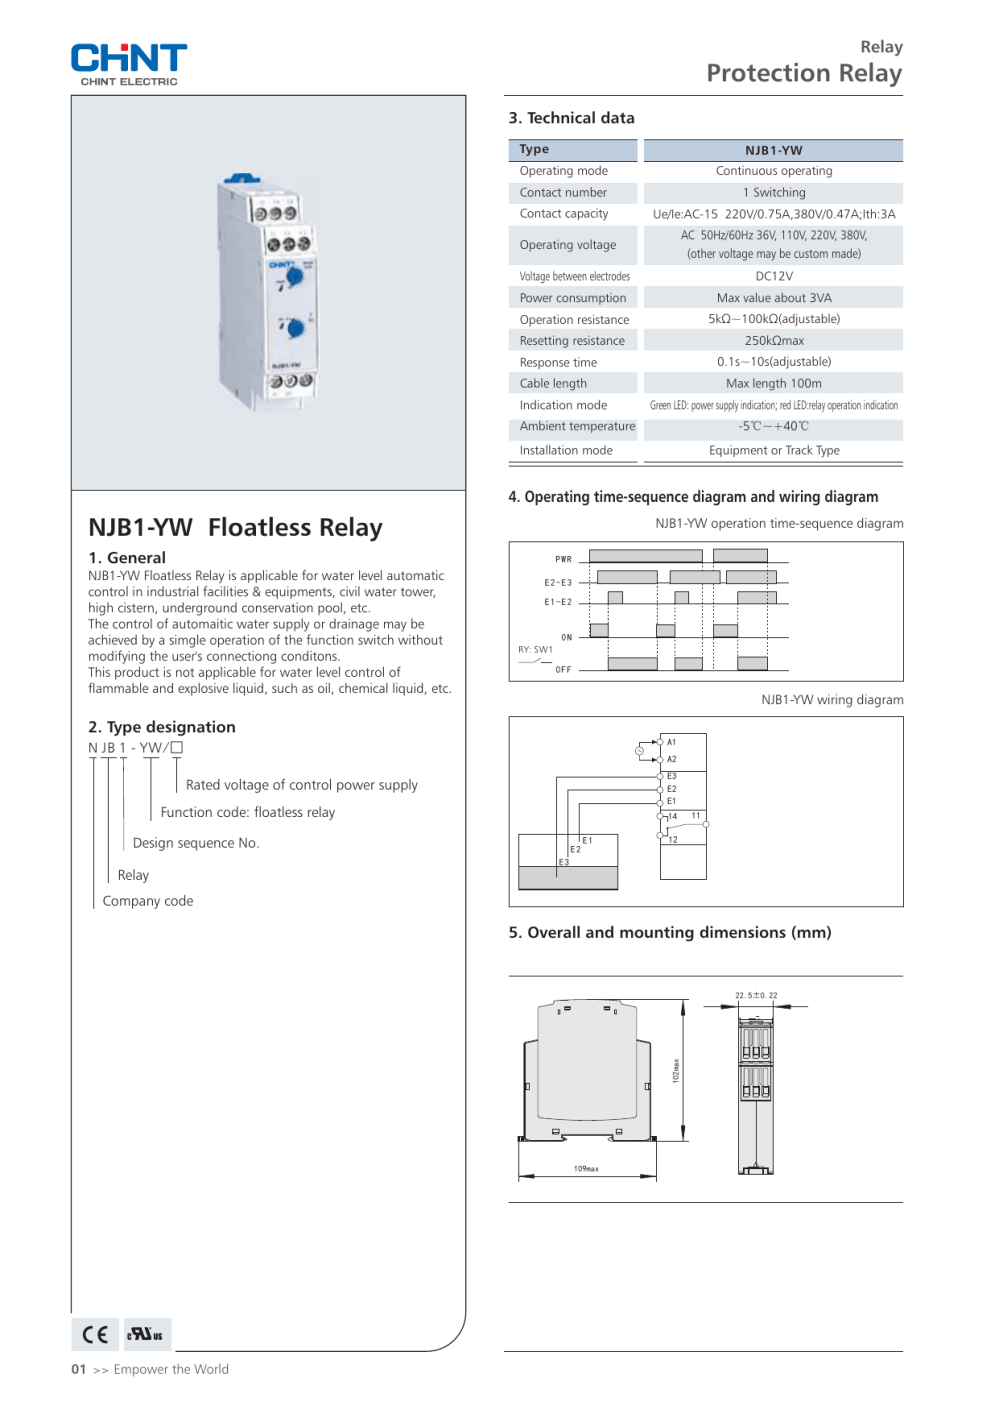 medium resolution of njb1 yw floatless relay protection relay